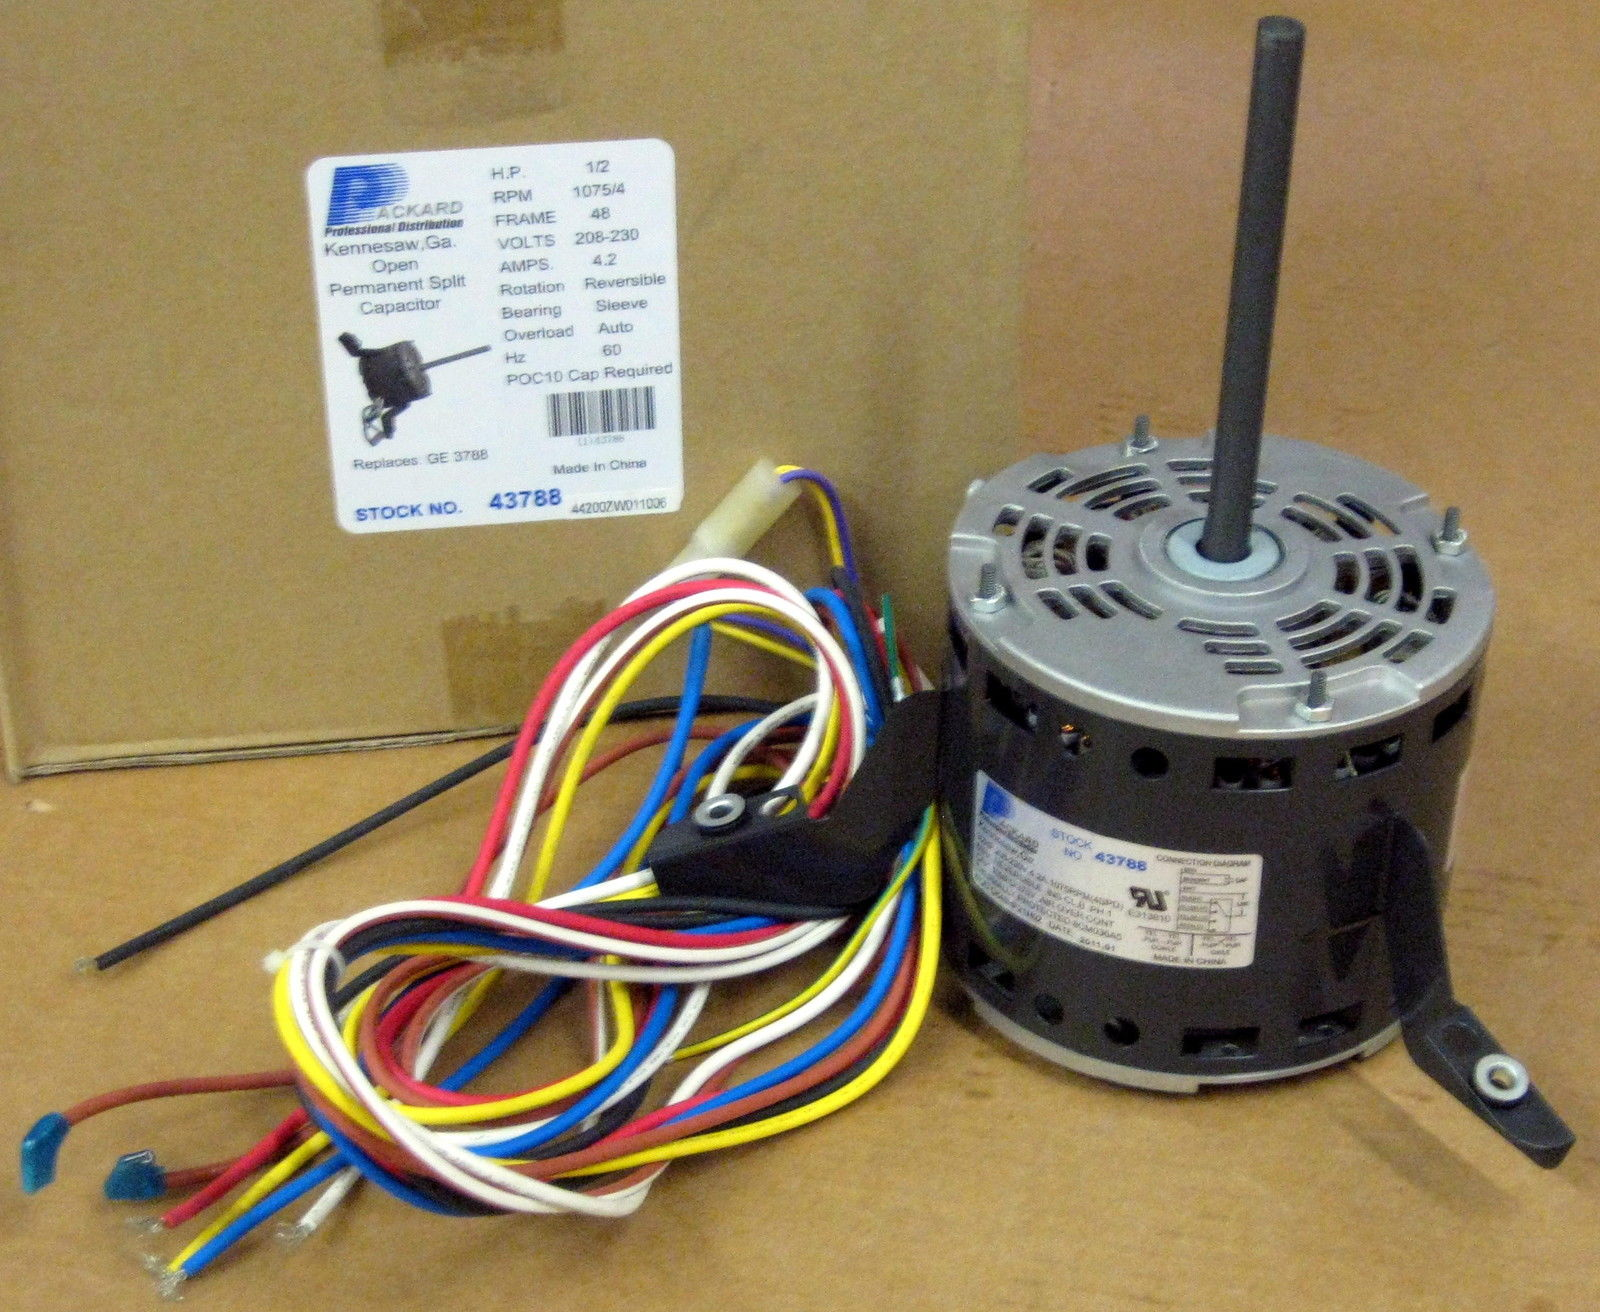 Details about 3788 A/C Blower Motor 1/2 HP 230 V 1075 RPM for Goodman on